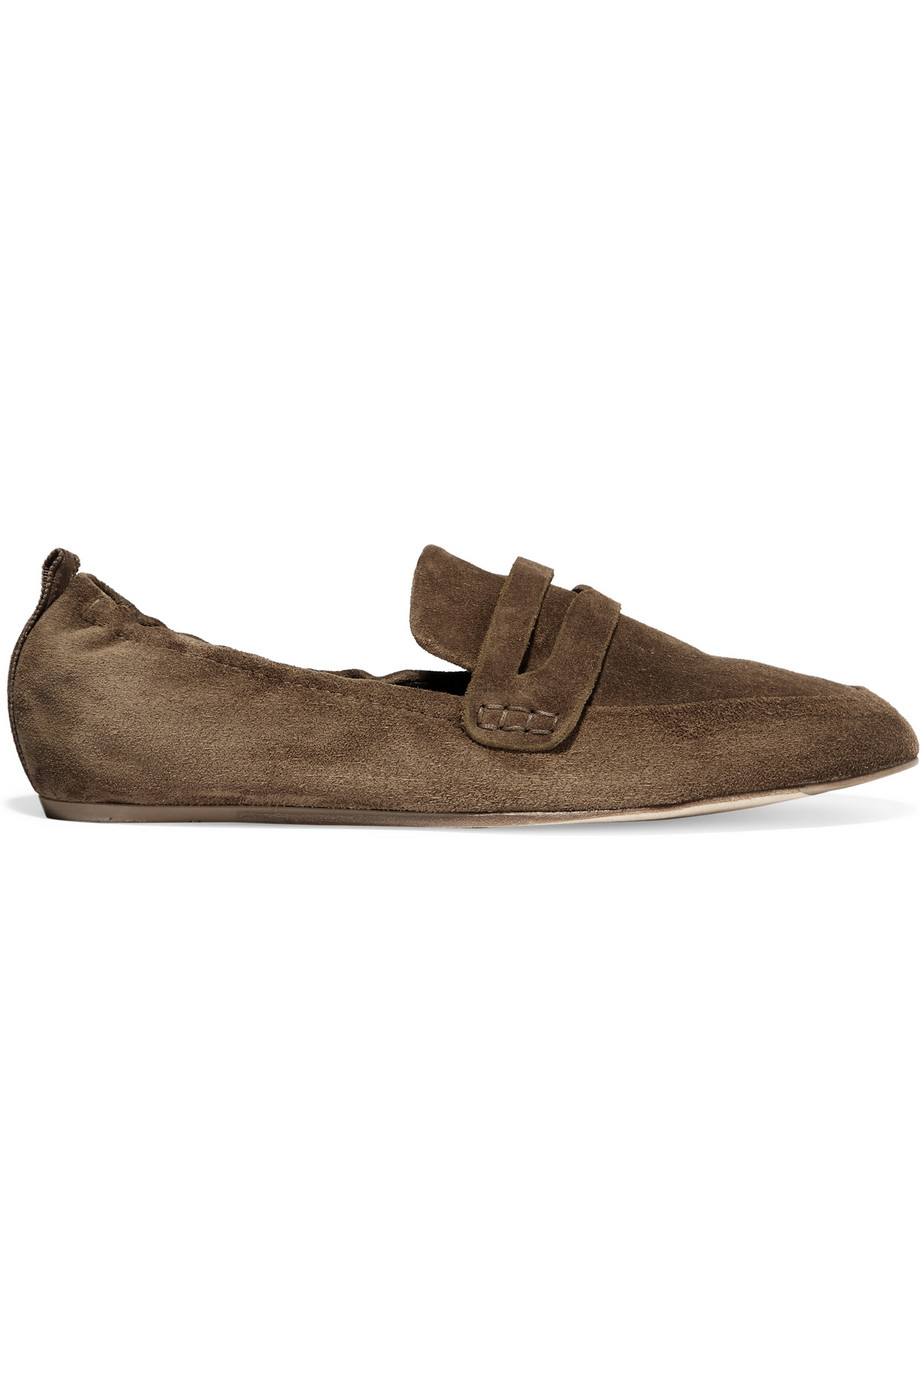 lanvin suede slippers in brown lyst